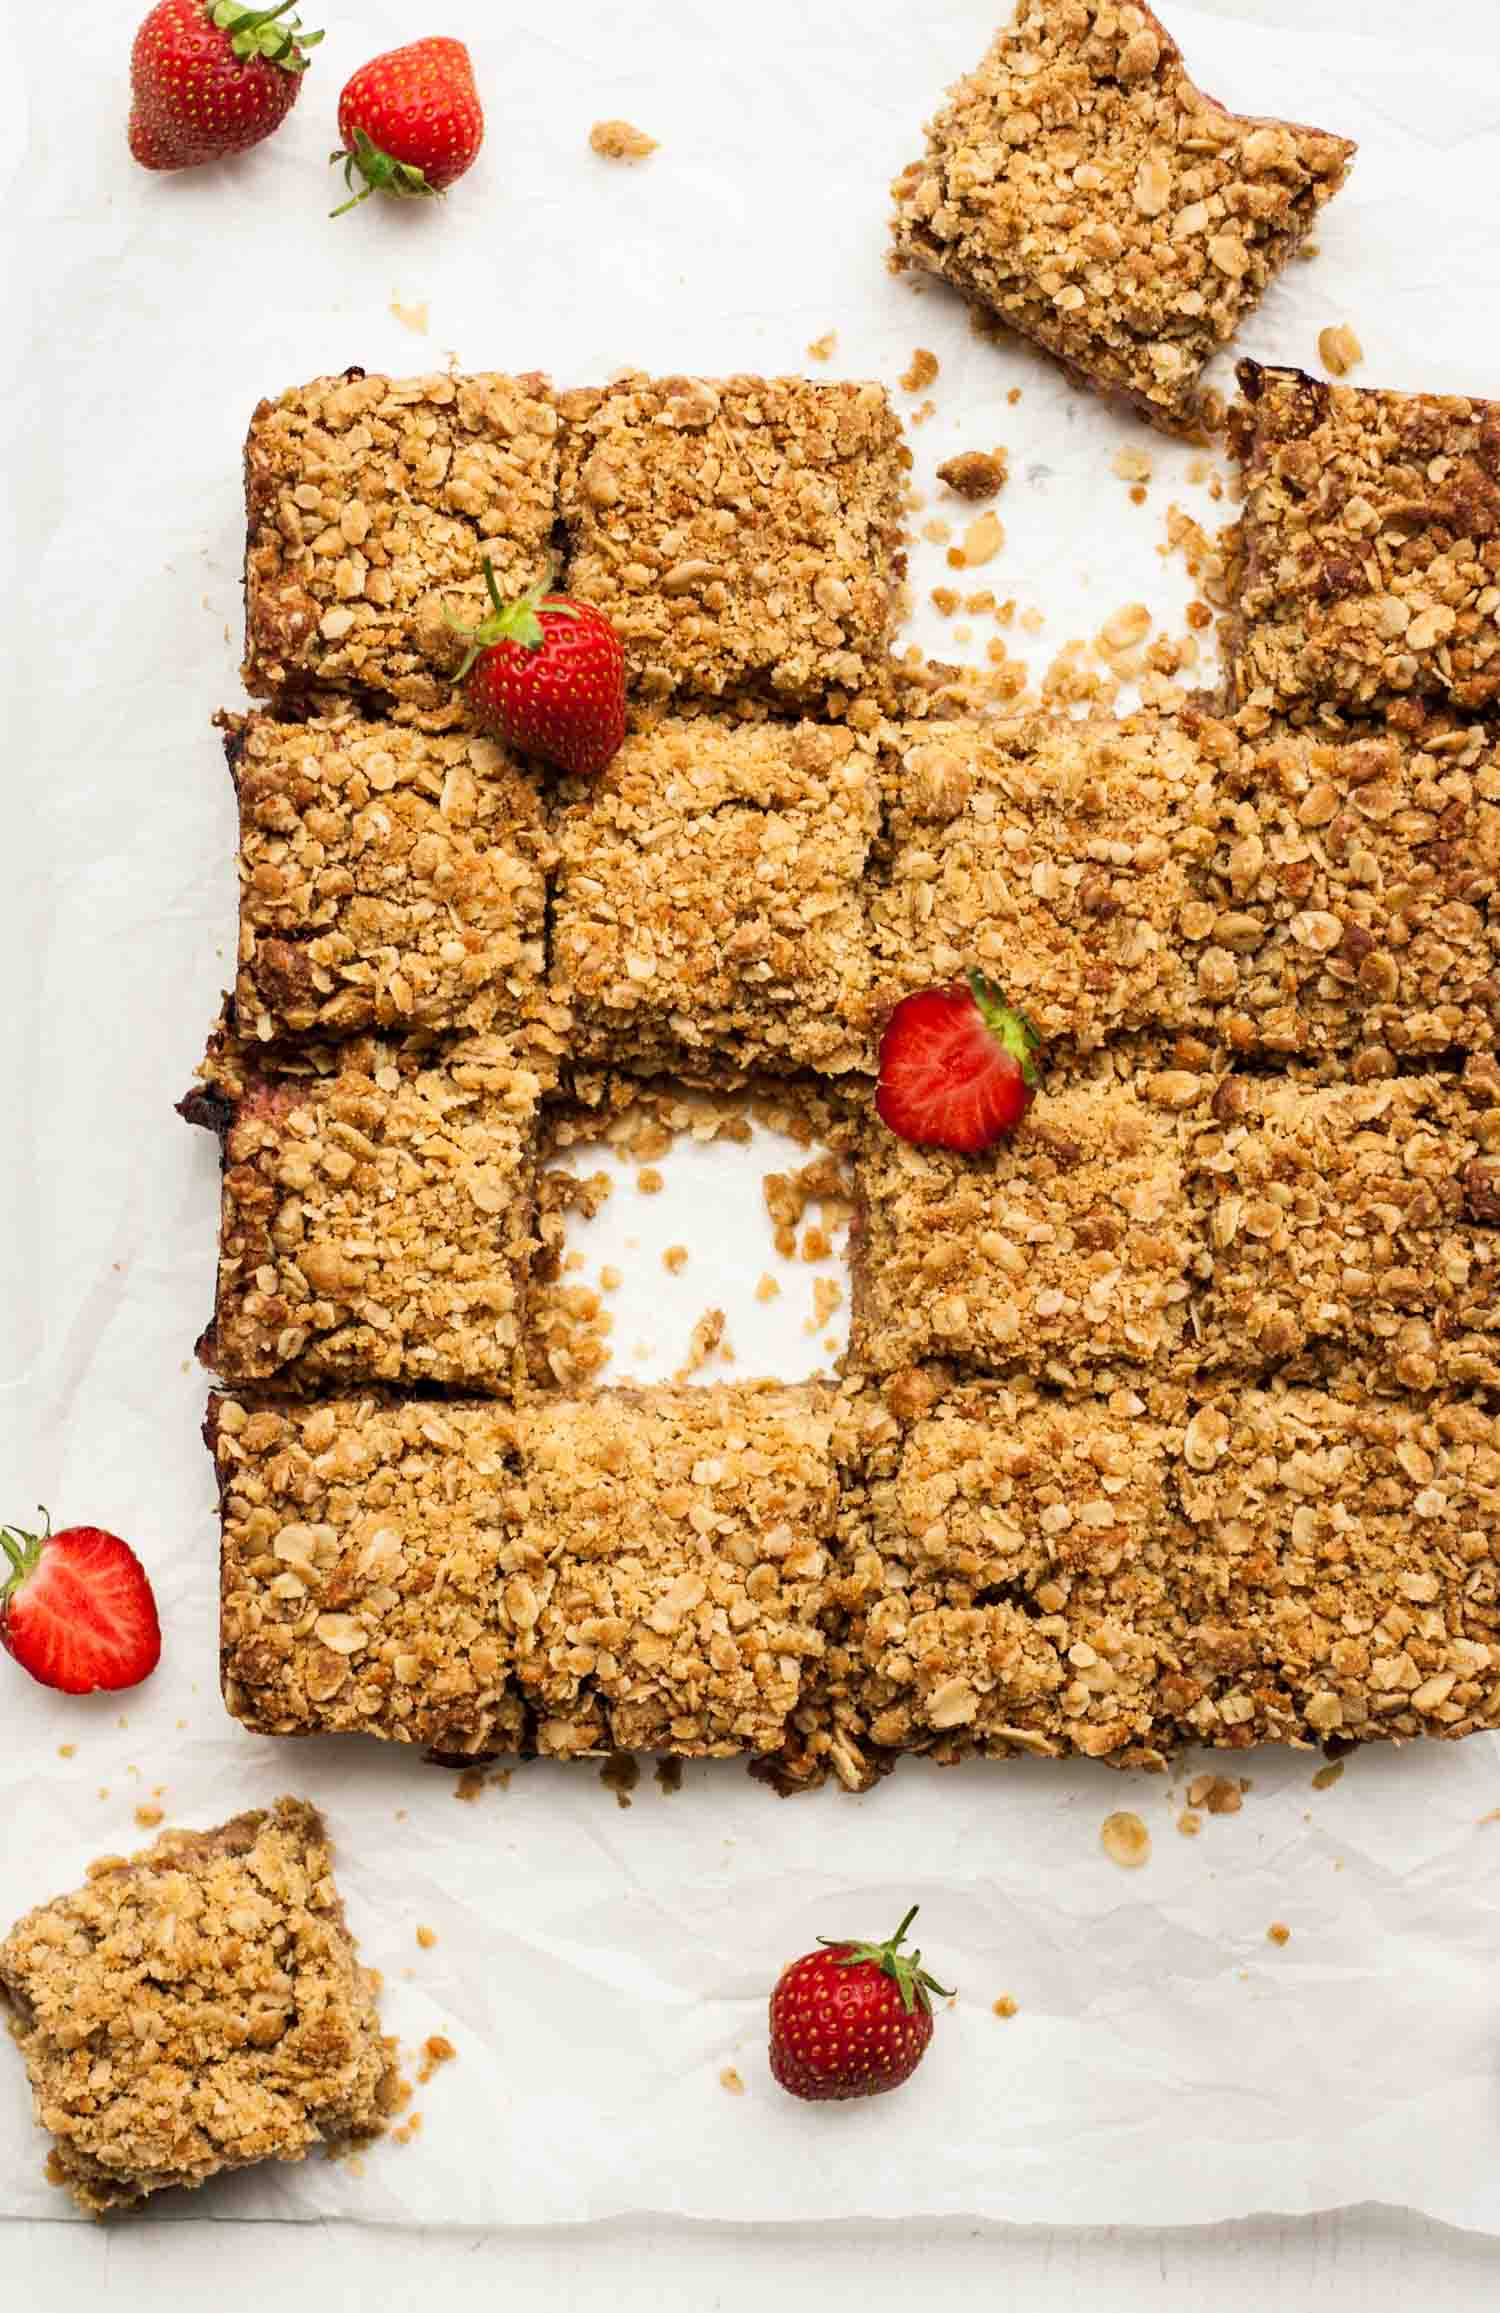 Strawberry Rhubarb Brown Butter Oatmeal Bars - these gooey oatmeal bars are quick and easy to make and are totally addictive! | eatloveeats.com